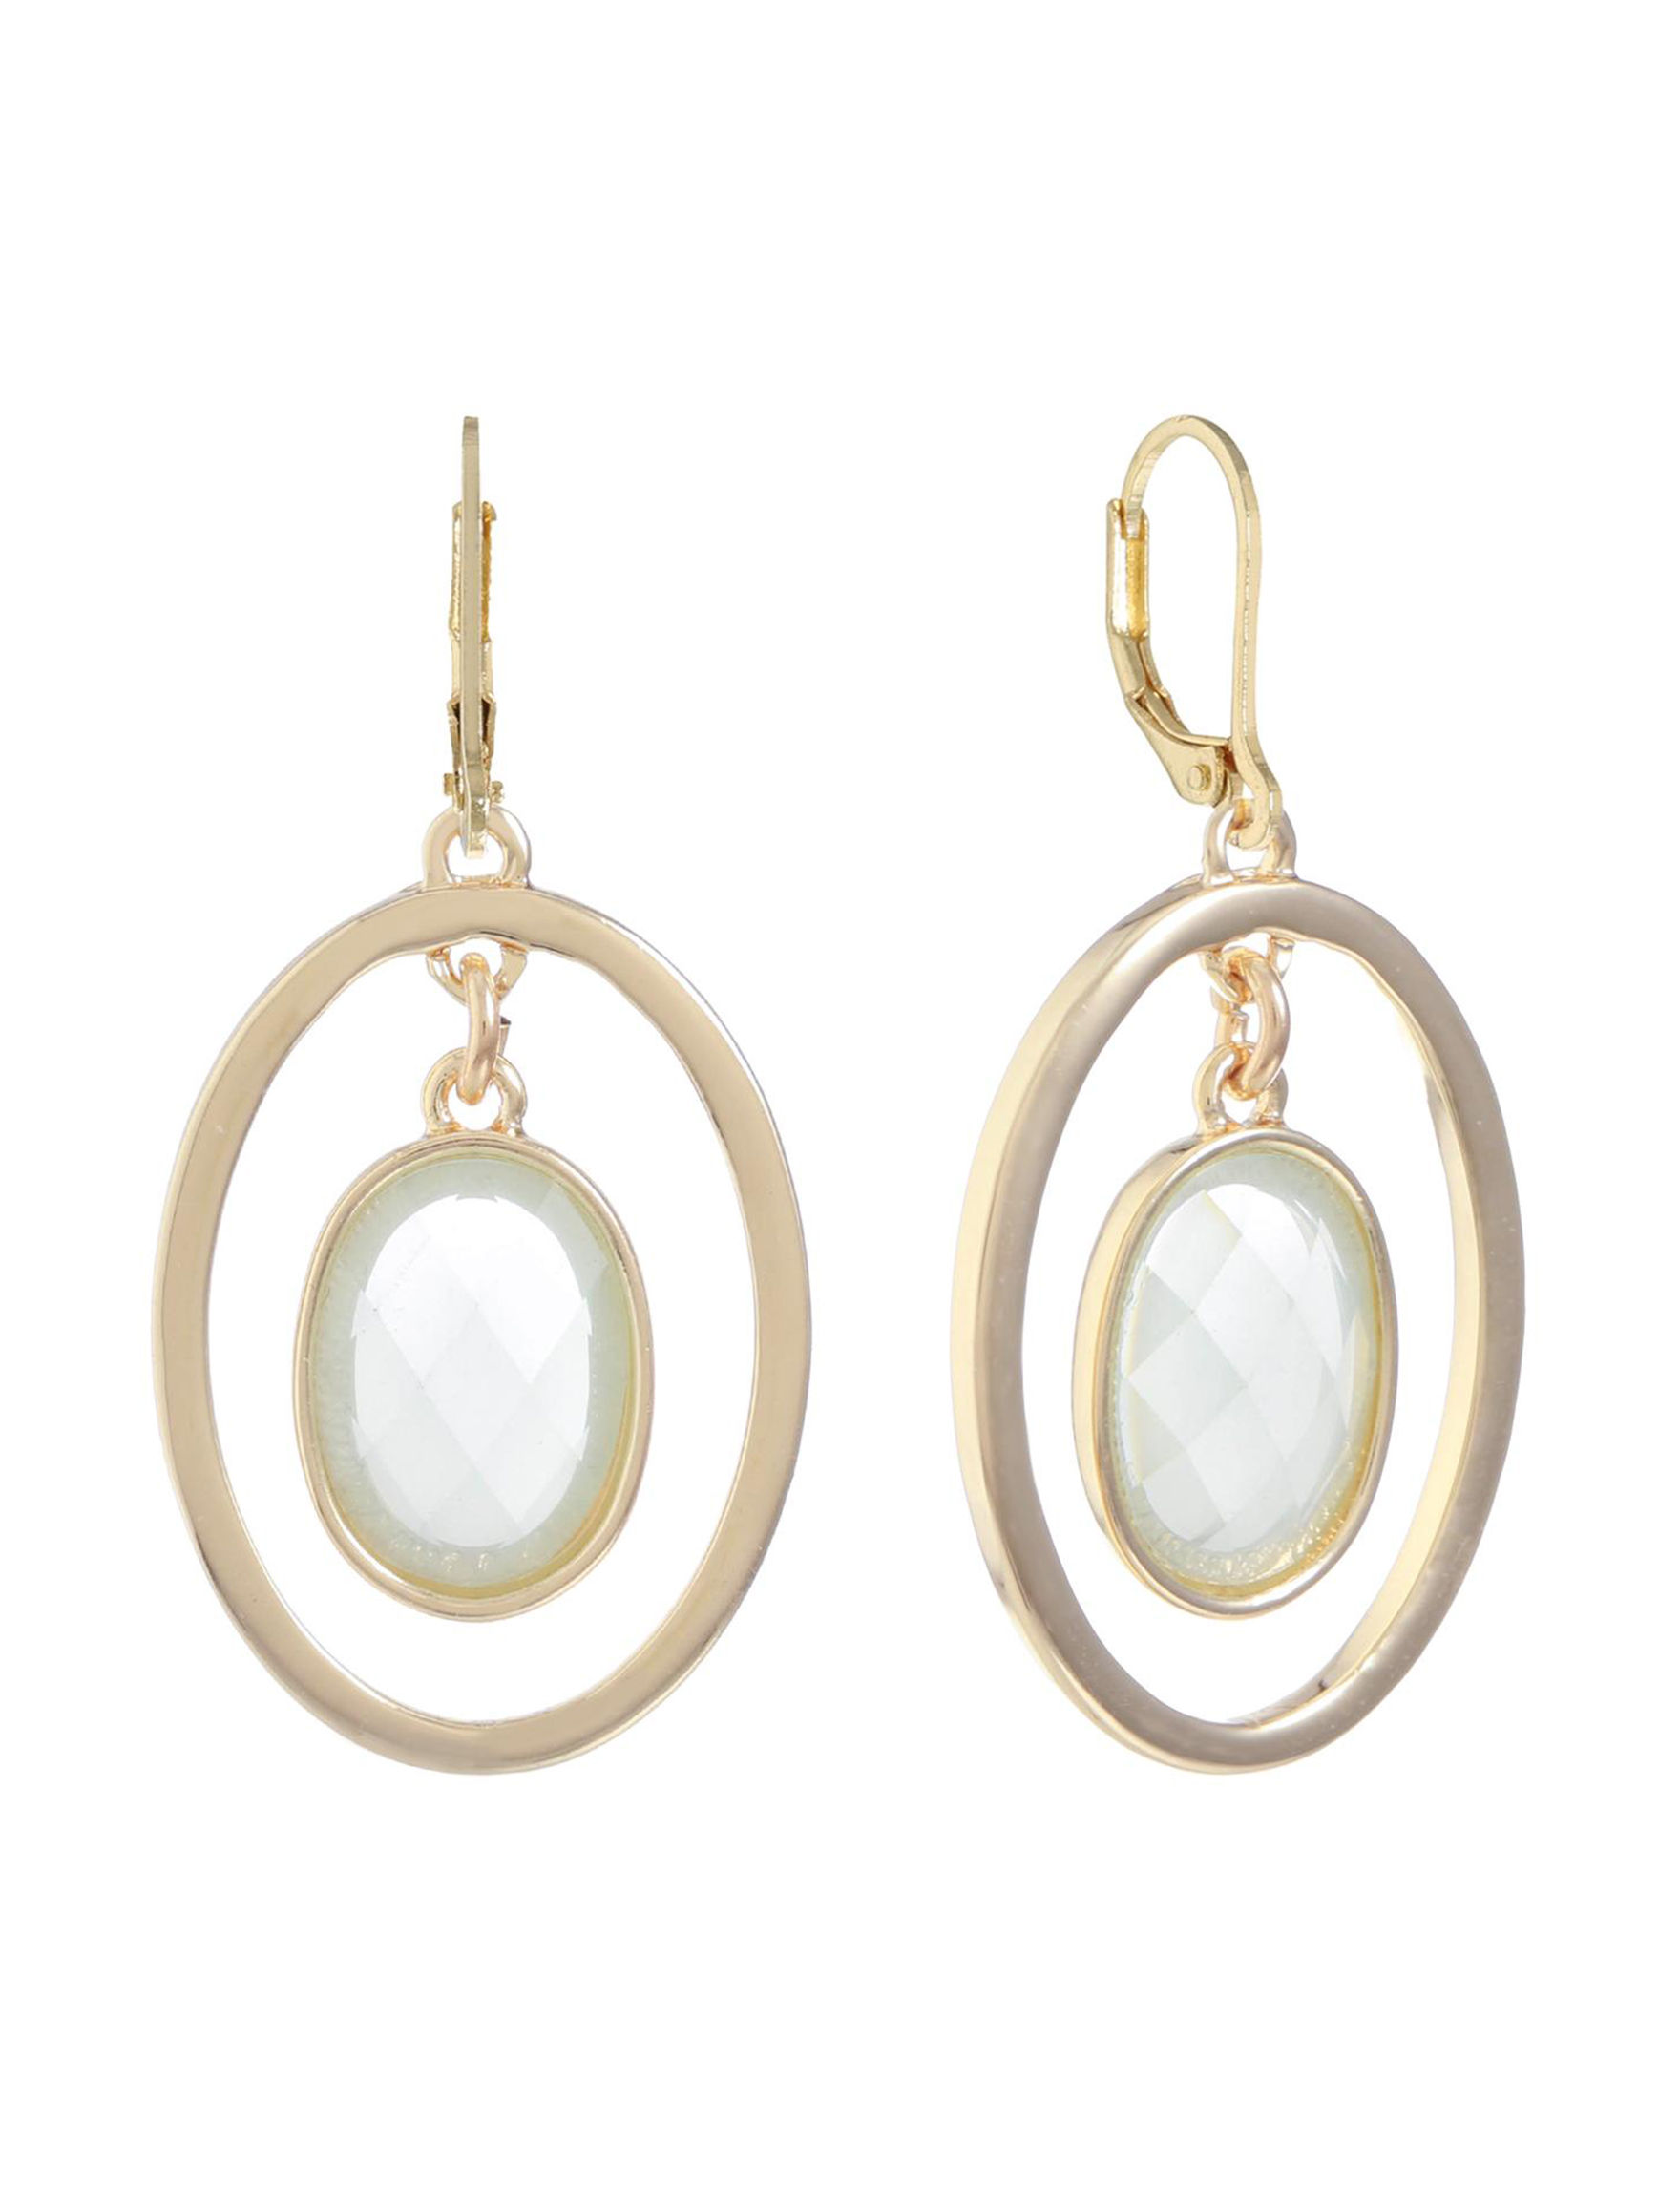 Gloria Vanderbilt Gold / Crystal Drops Earrings Fashion Jewelry